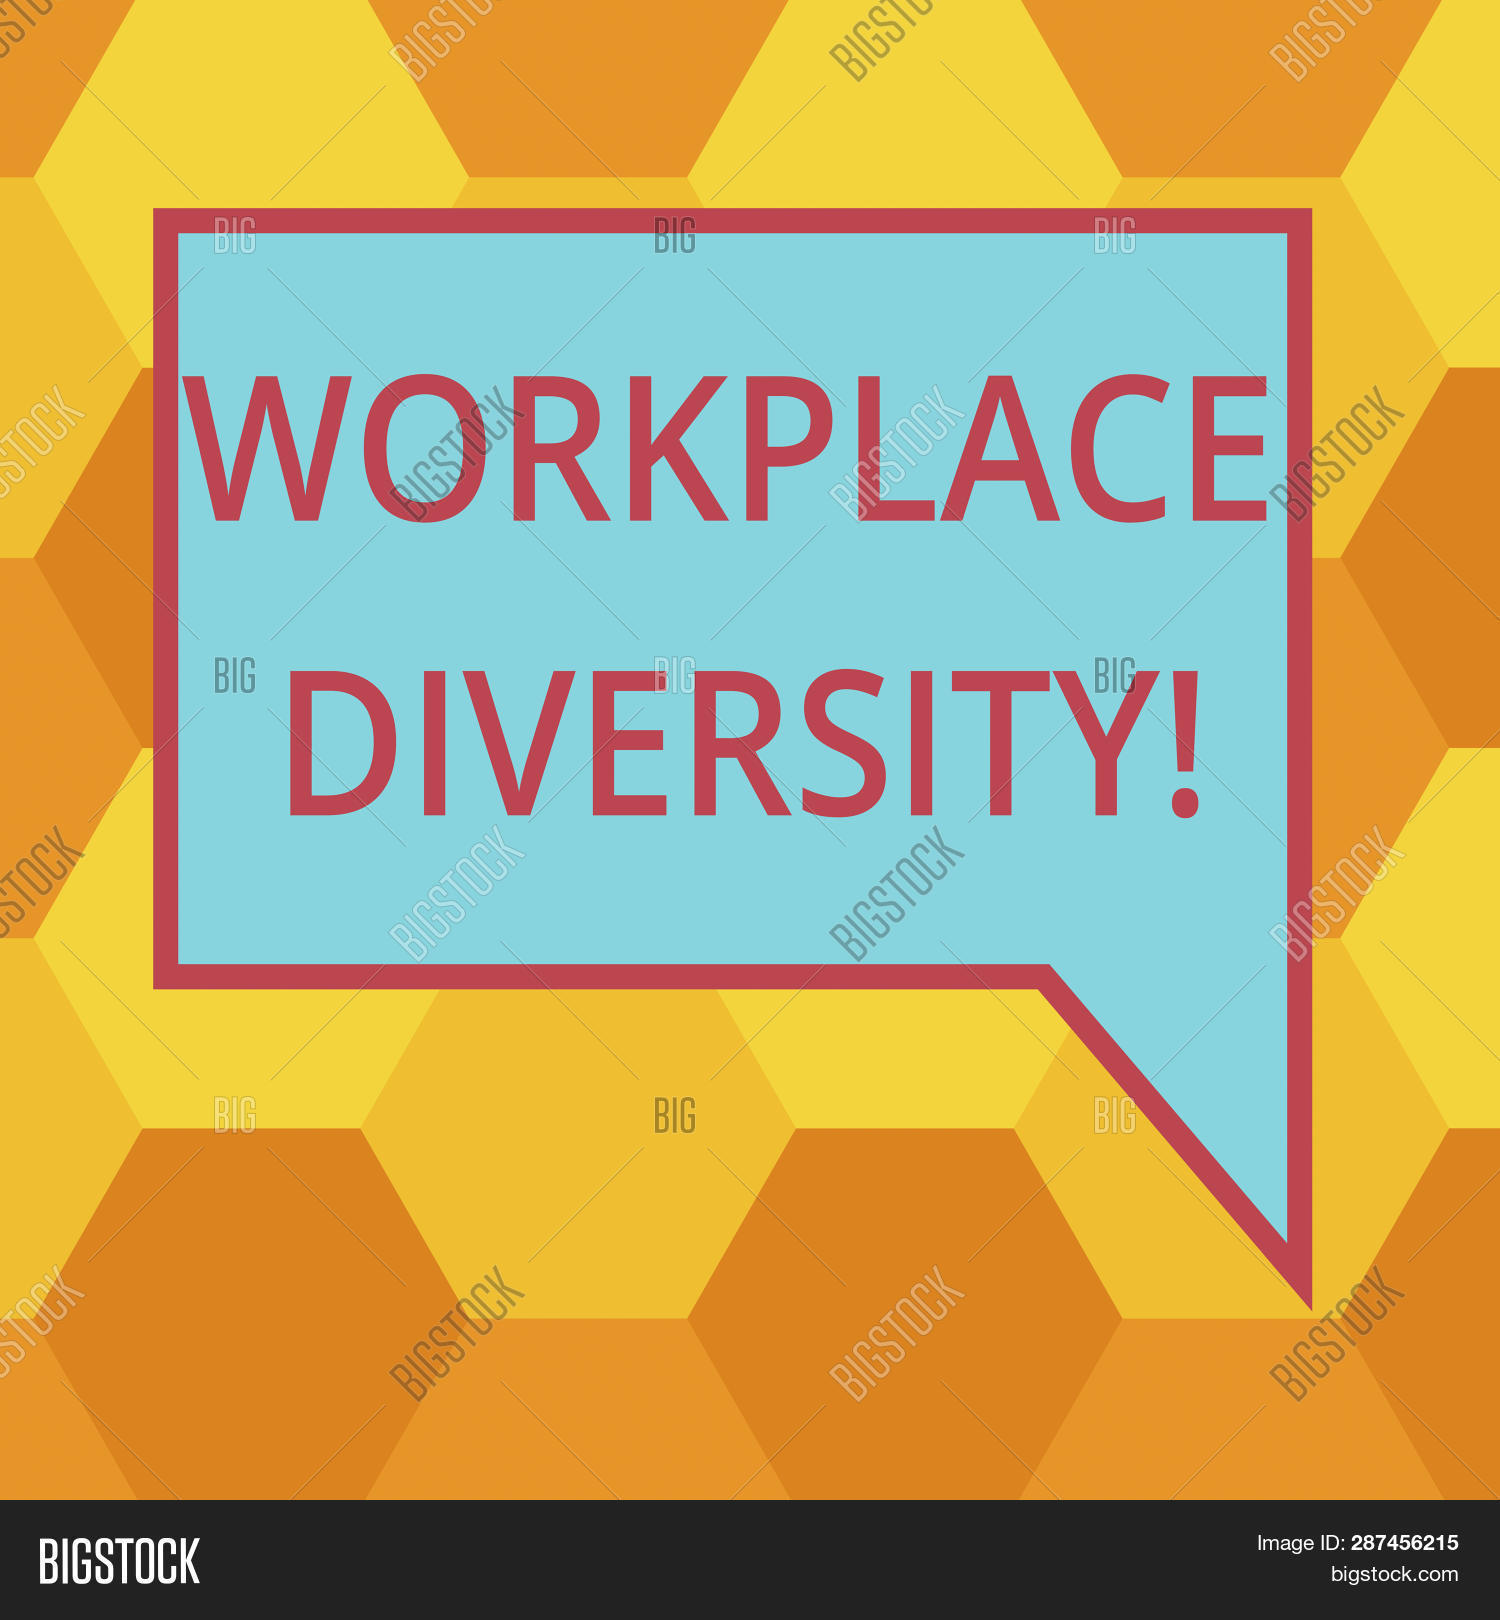 Diversity Meaning Workplace >> Handwriting Text Image Photo Free Trial Bigstock